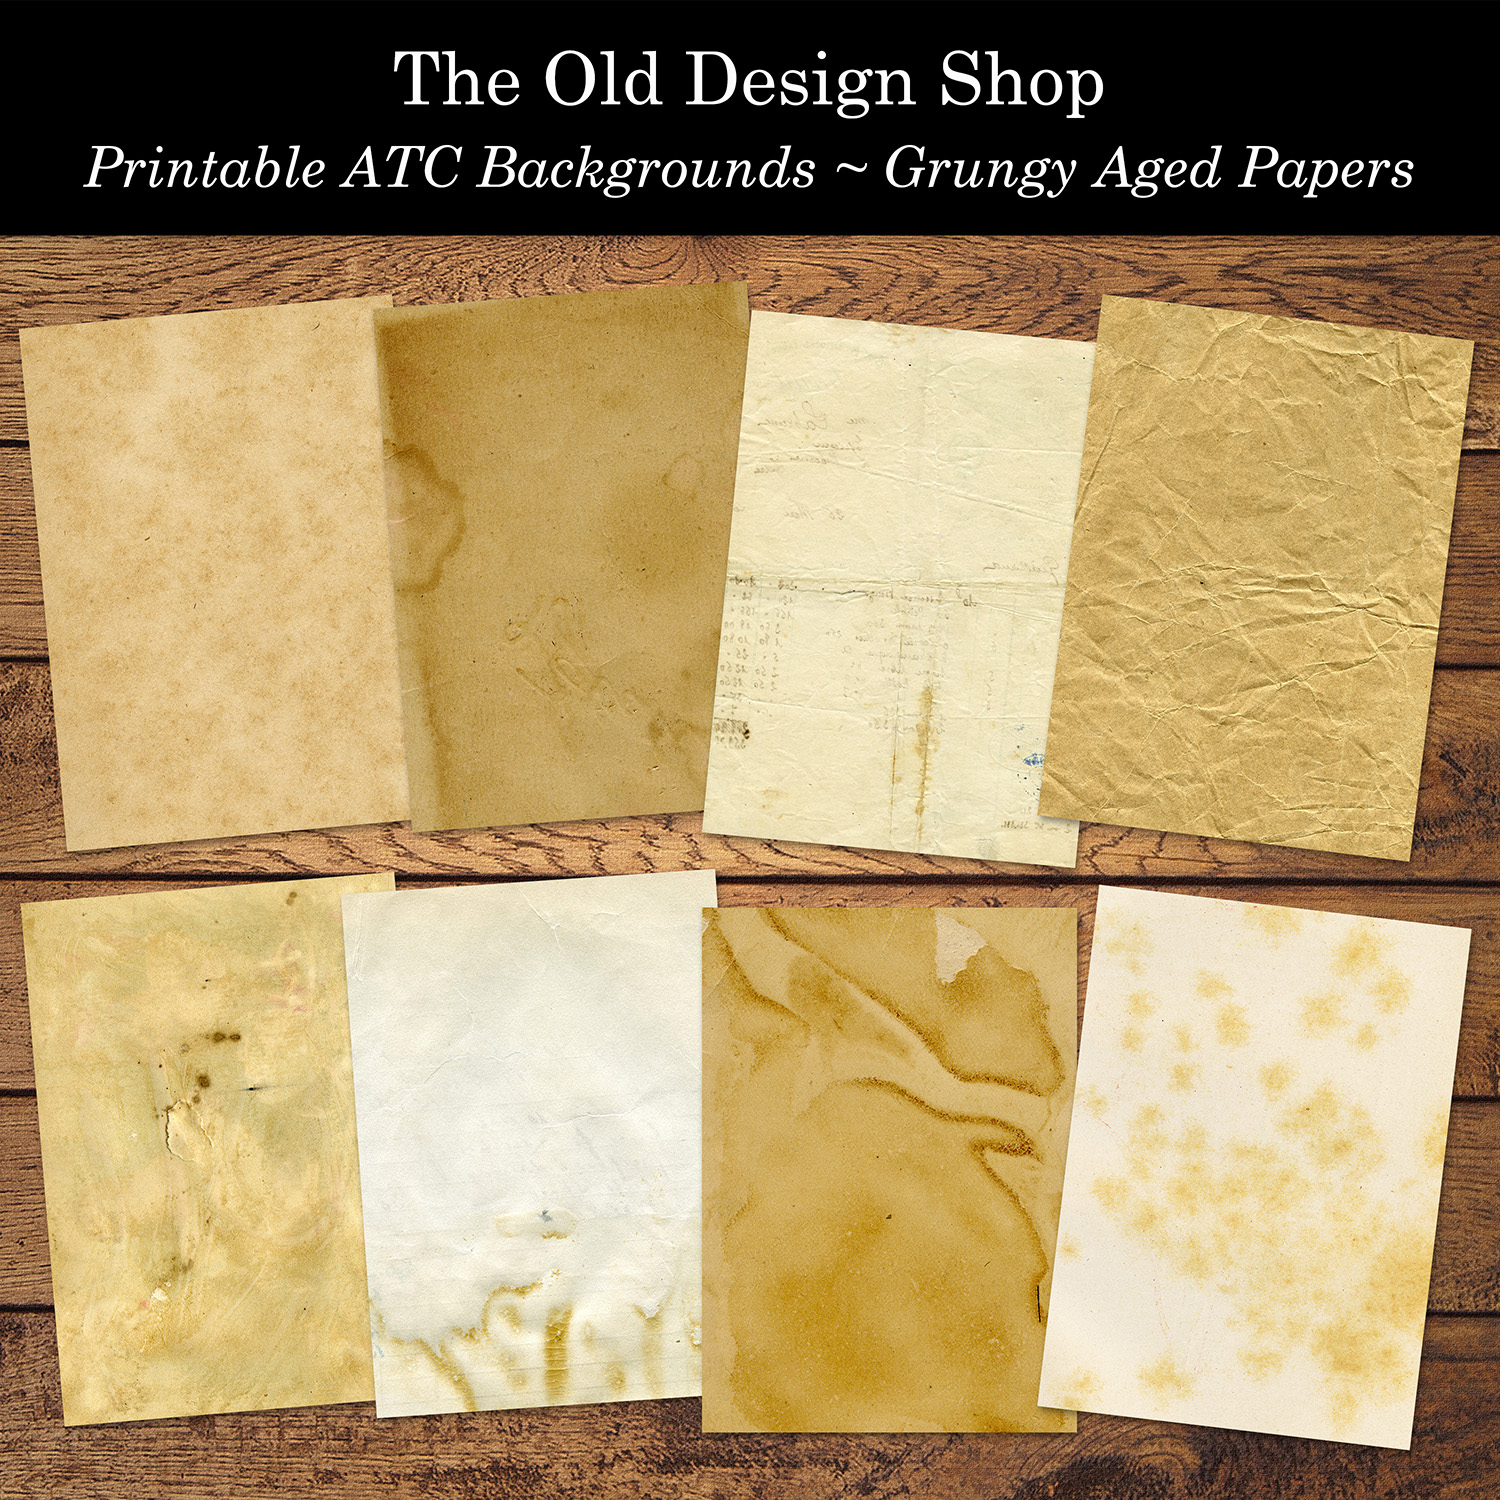 printable ATC backgrounds grungy aged papers